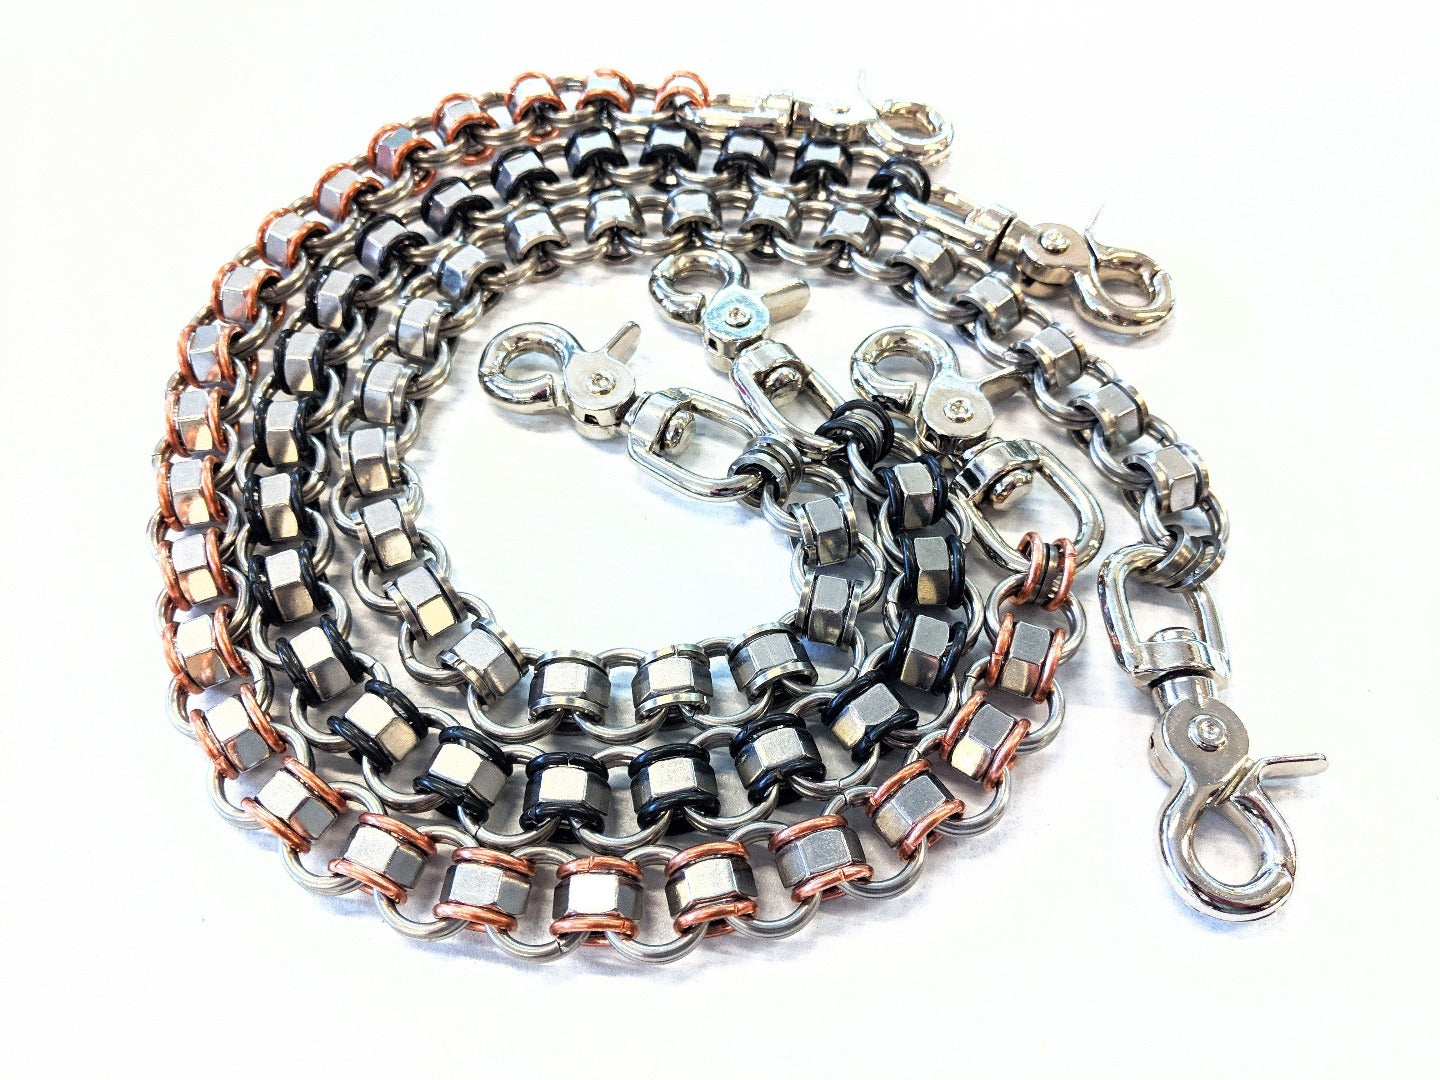 22 Inch Industry Chain Mail Wallet Chain - Anvil Customs